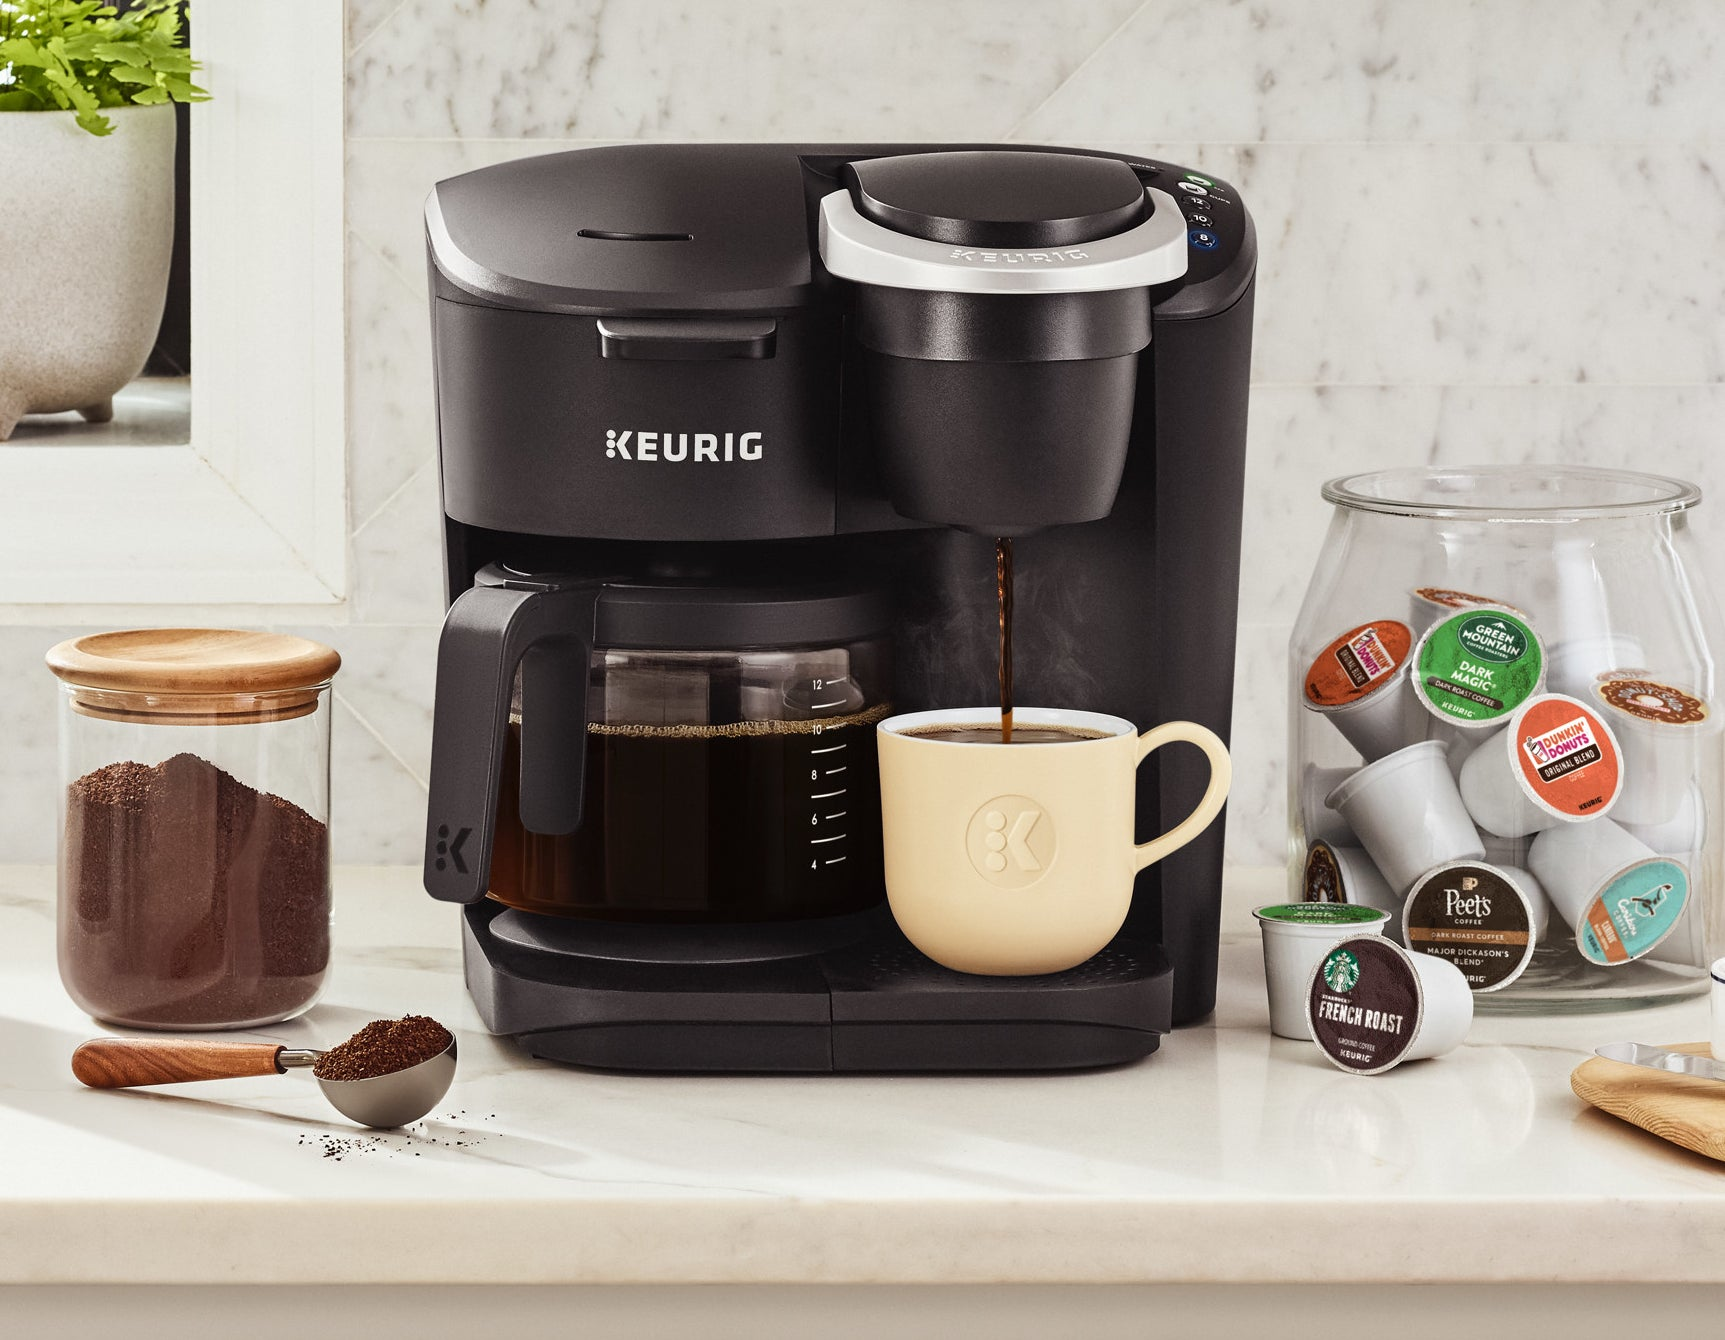 black keurig coffee machine with a pot on one side and a mug on the other